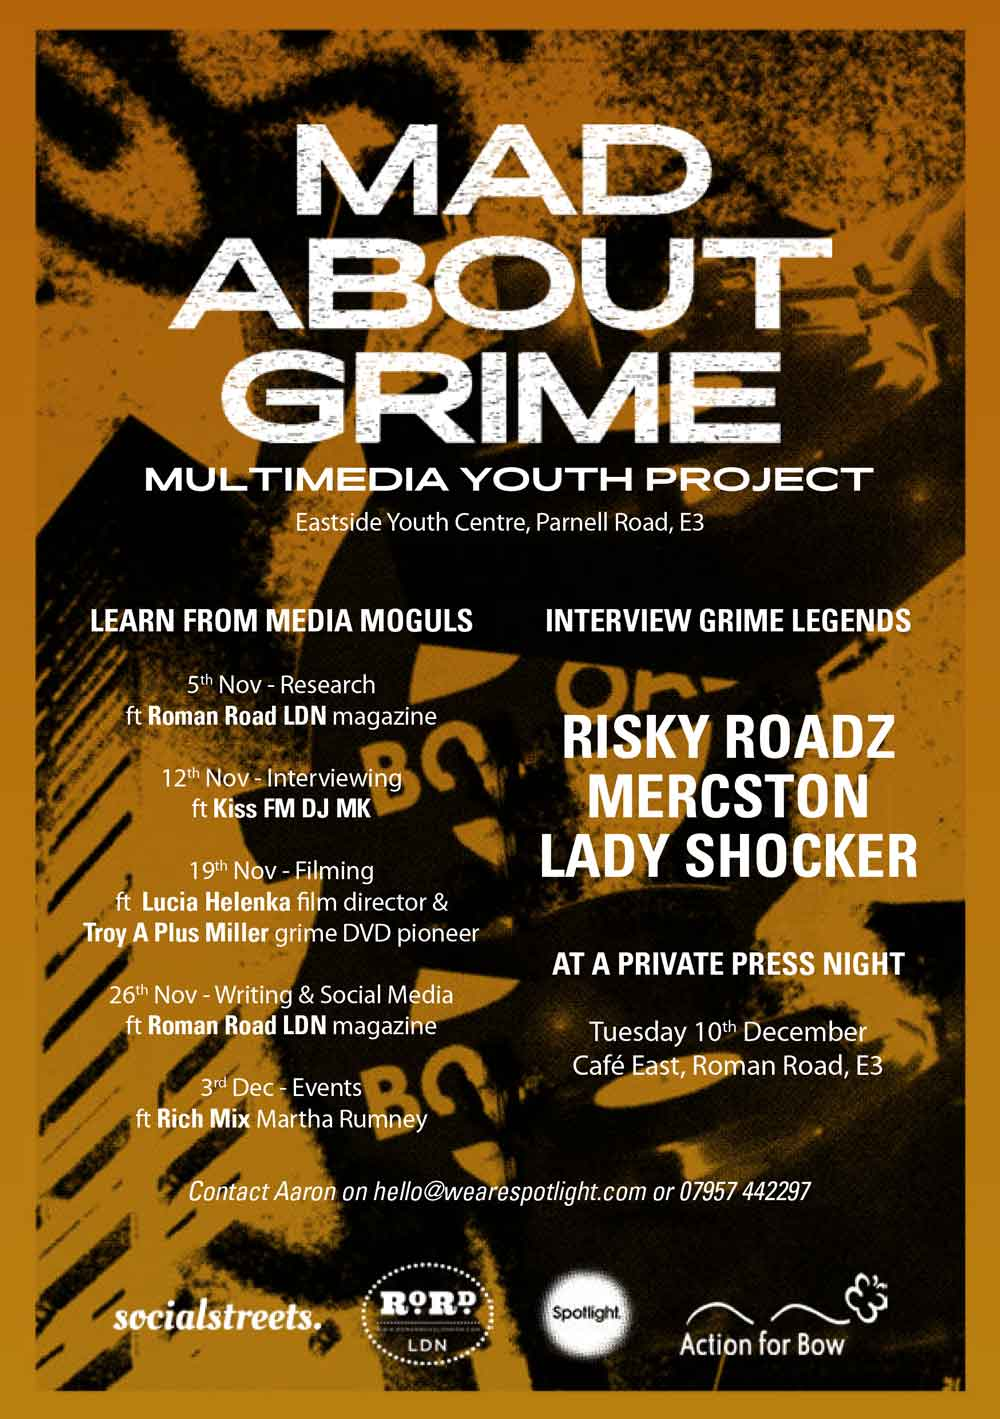 Mad About Grime youth project flyer